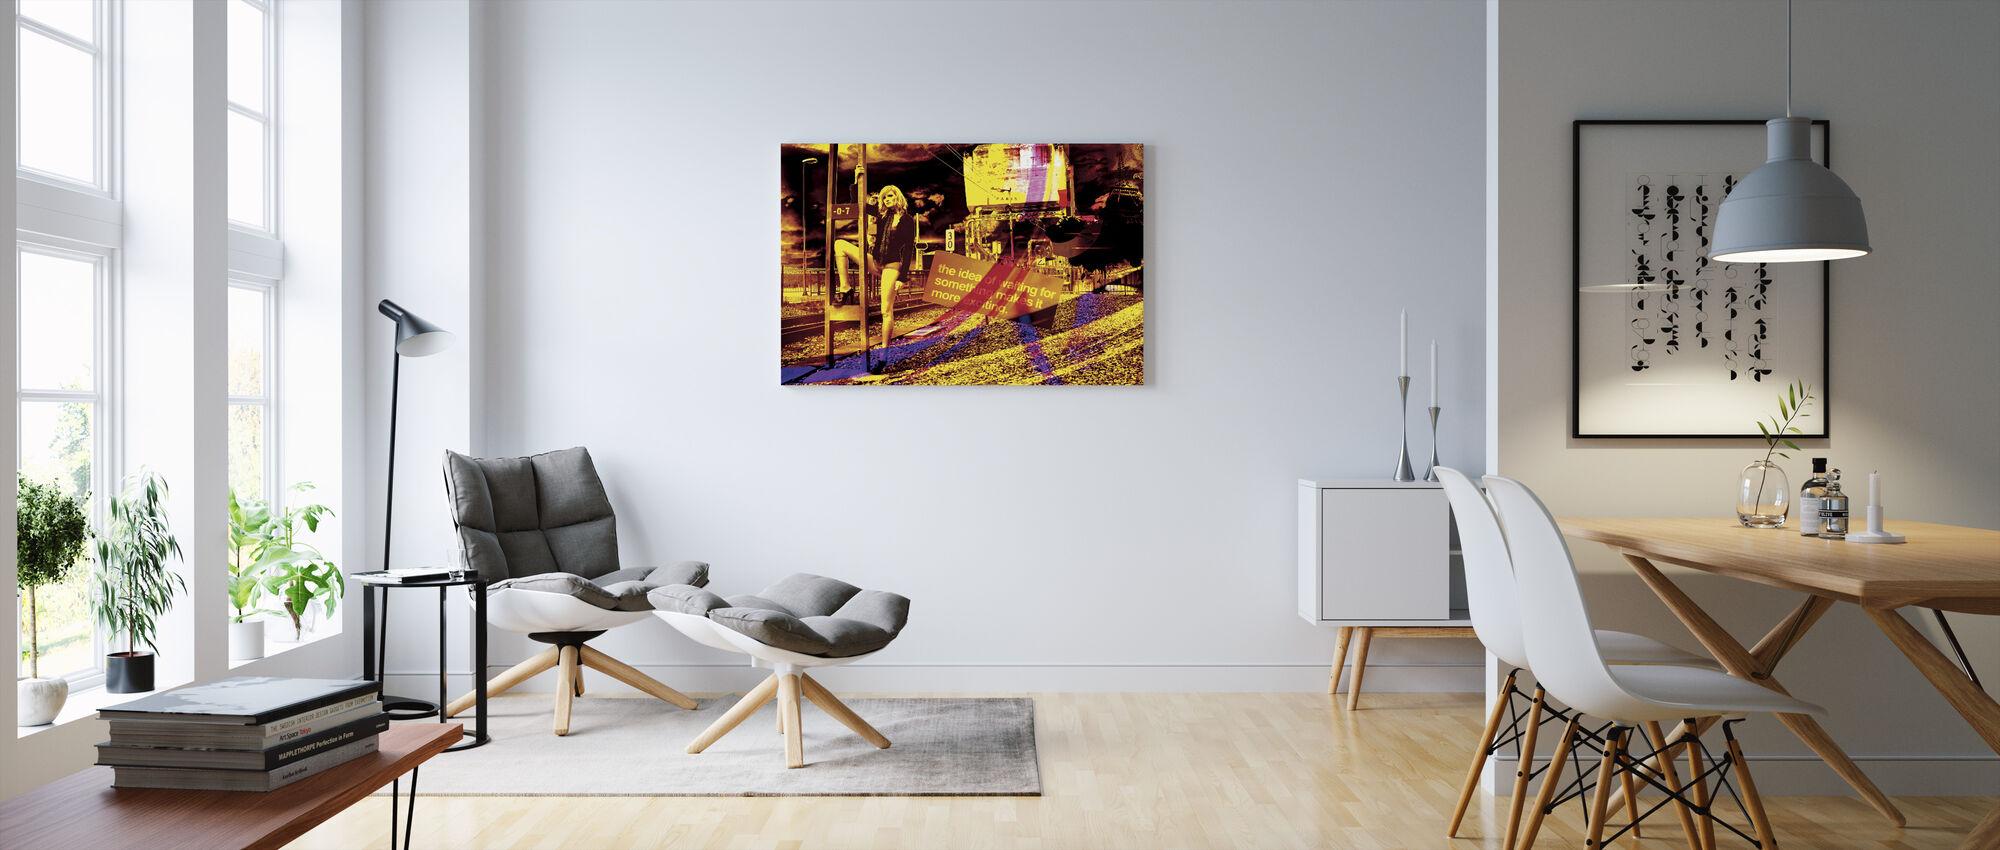 Just Waiting - Canvas print - Living Room